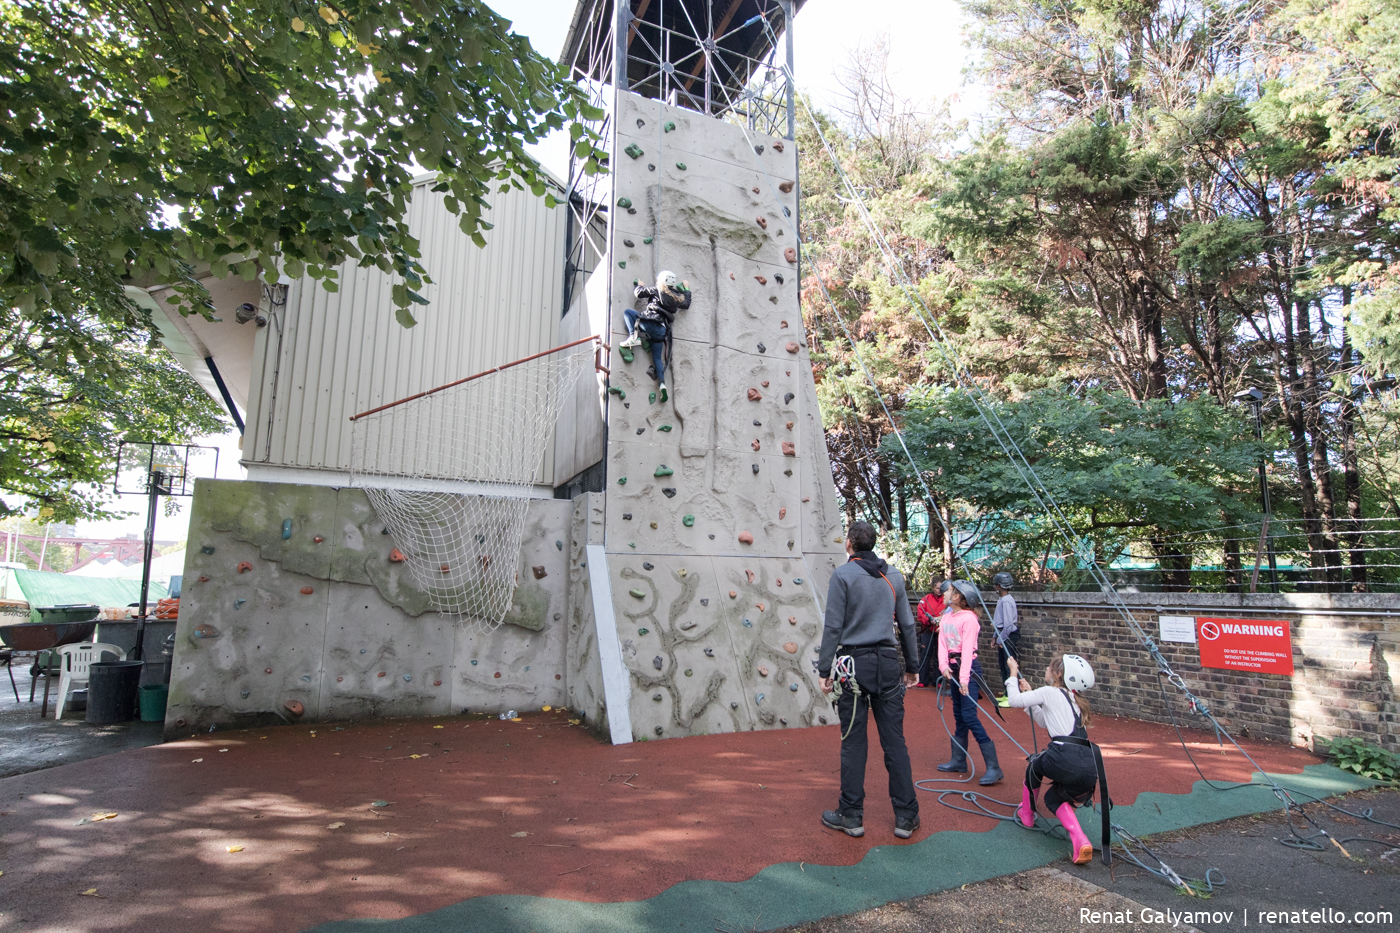 Climbing at Shadwell Basin Outdoor Activity Centre